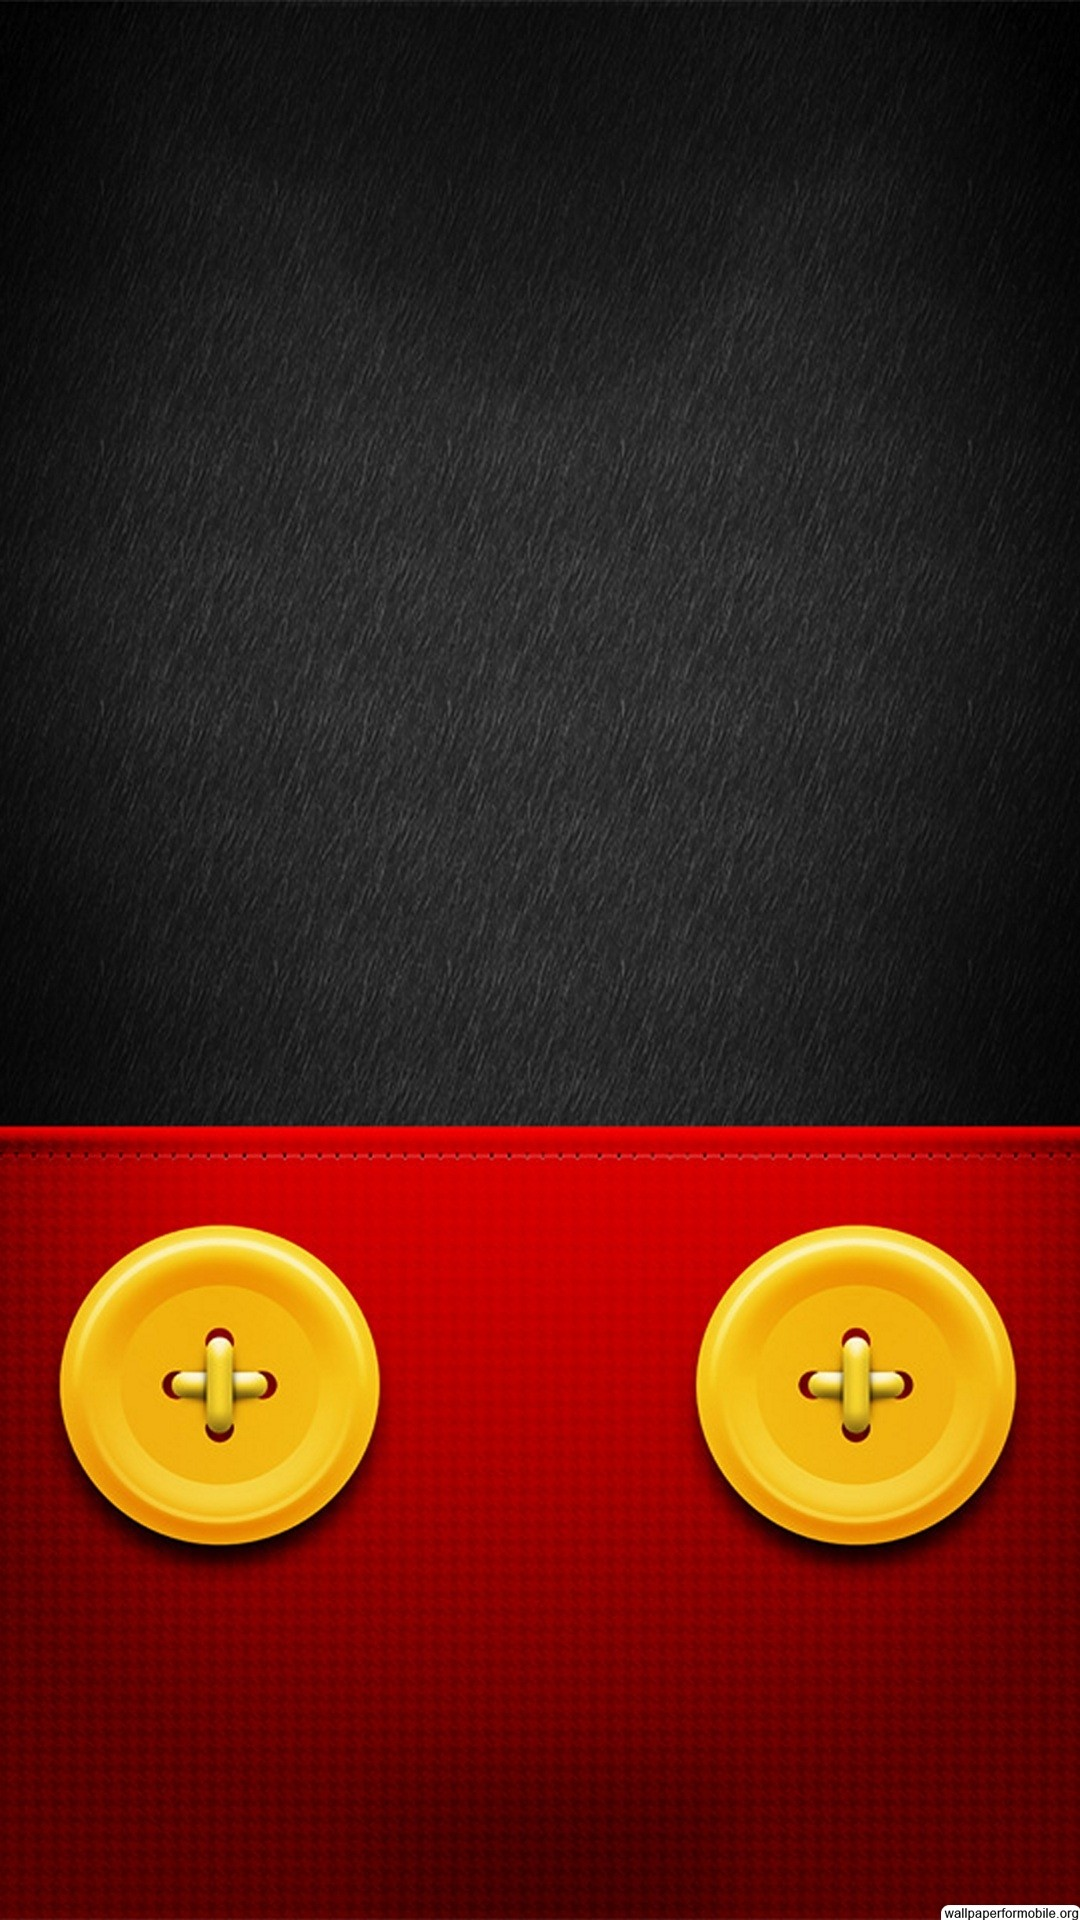 Wallpaper iphone mickey mouse - 1080x1920 Mickey Mouse Wallpaper 1080x1920 Ios